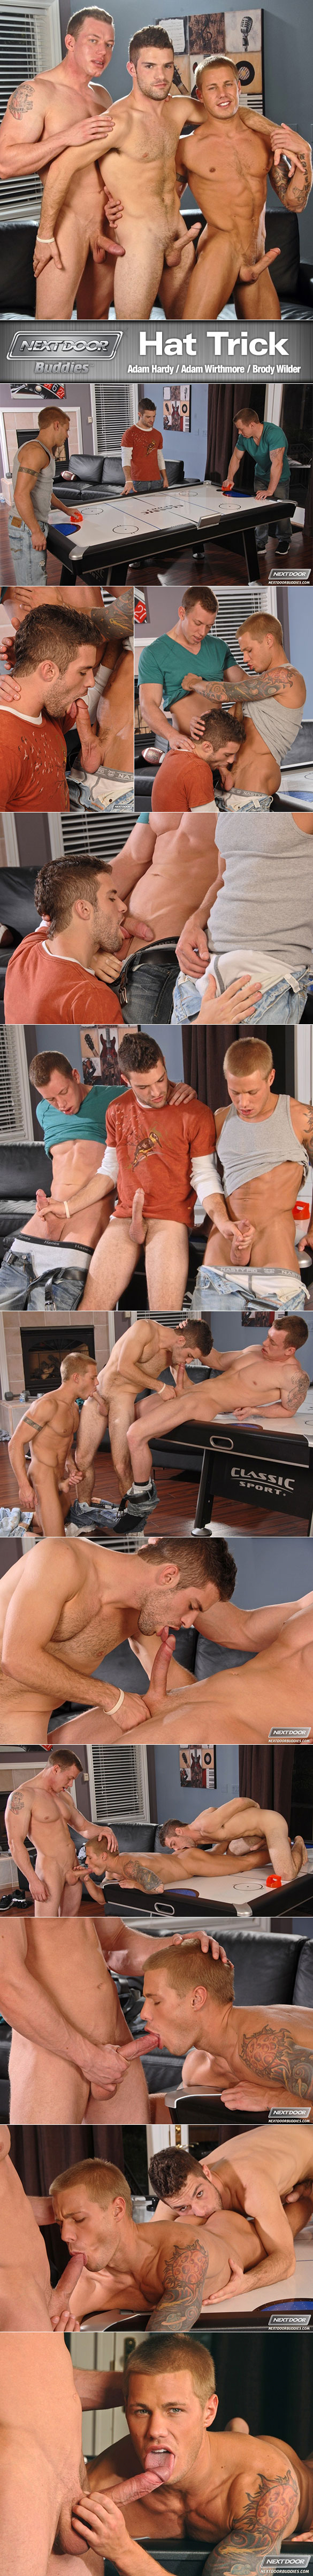 "Next Door Studios: Adam Wirthmore, Brody Wilder and Adam Hardy fuck each other in ""Hat Trick"""